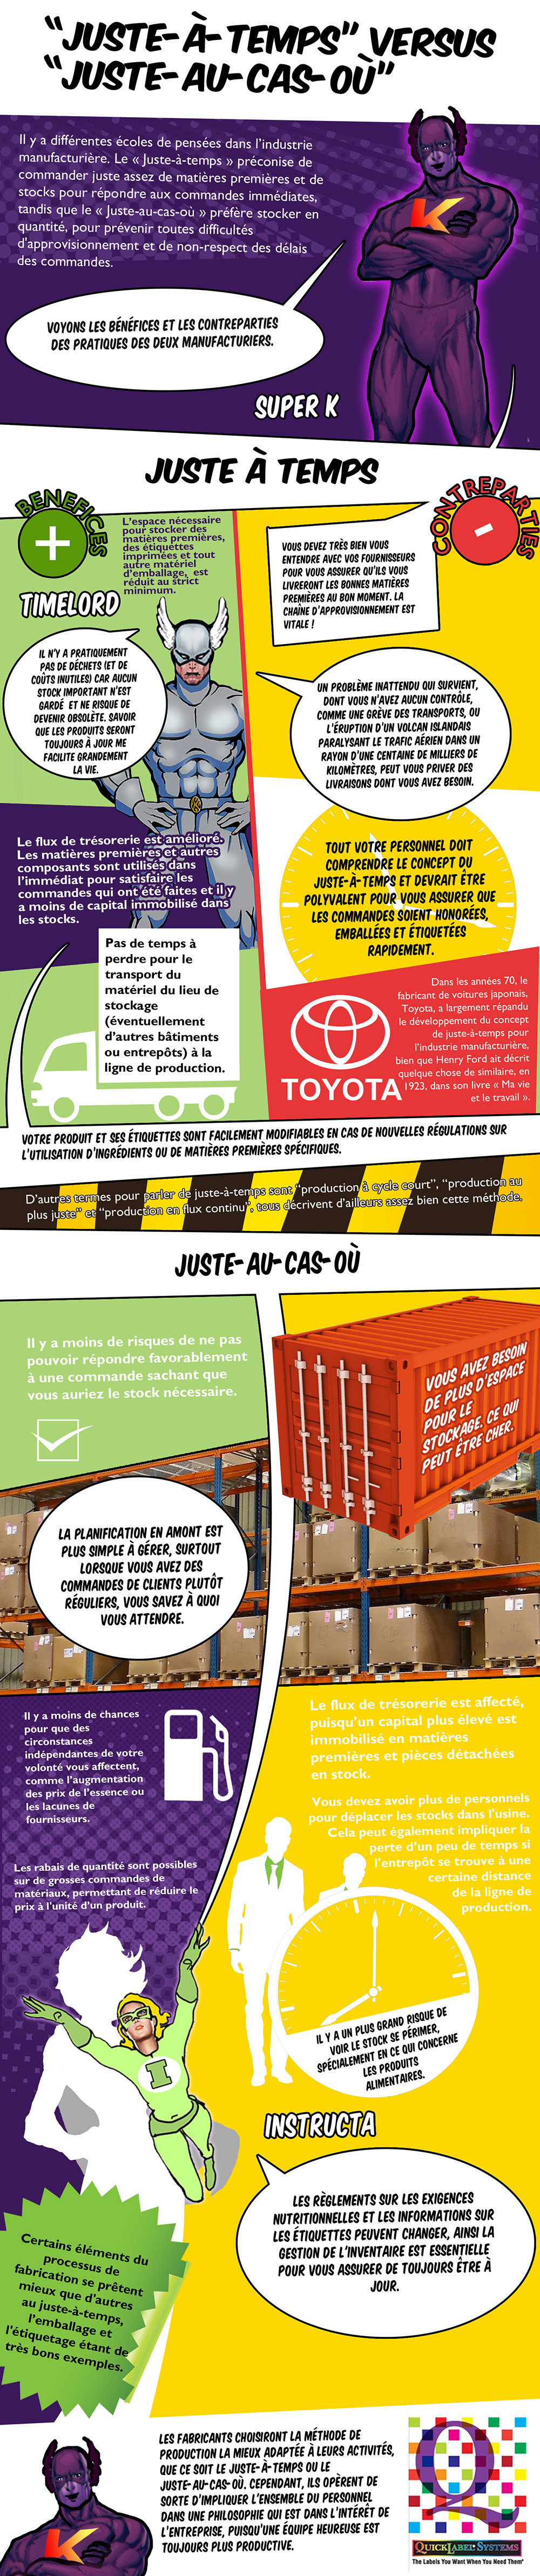 Infographic for Quicklabel, just in time vs just in case in French, for social media differences in just in time and just in case processes...